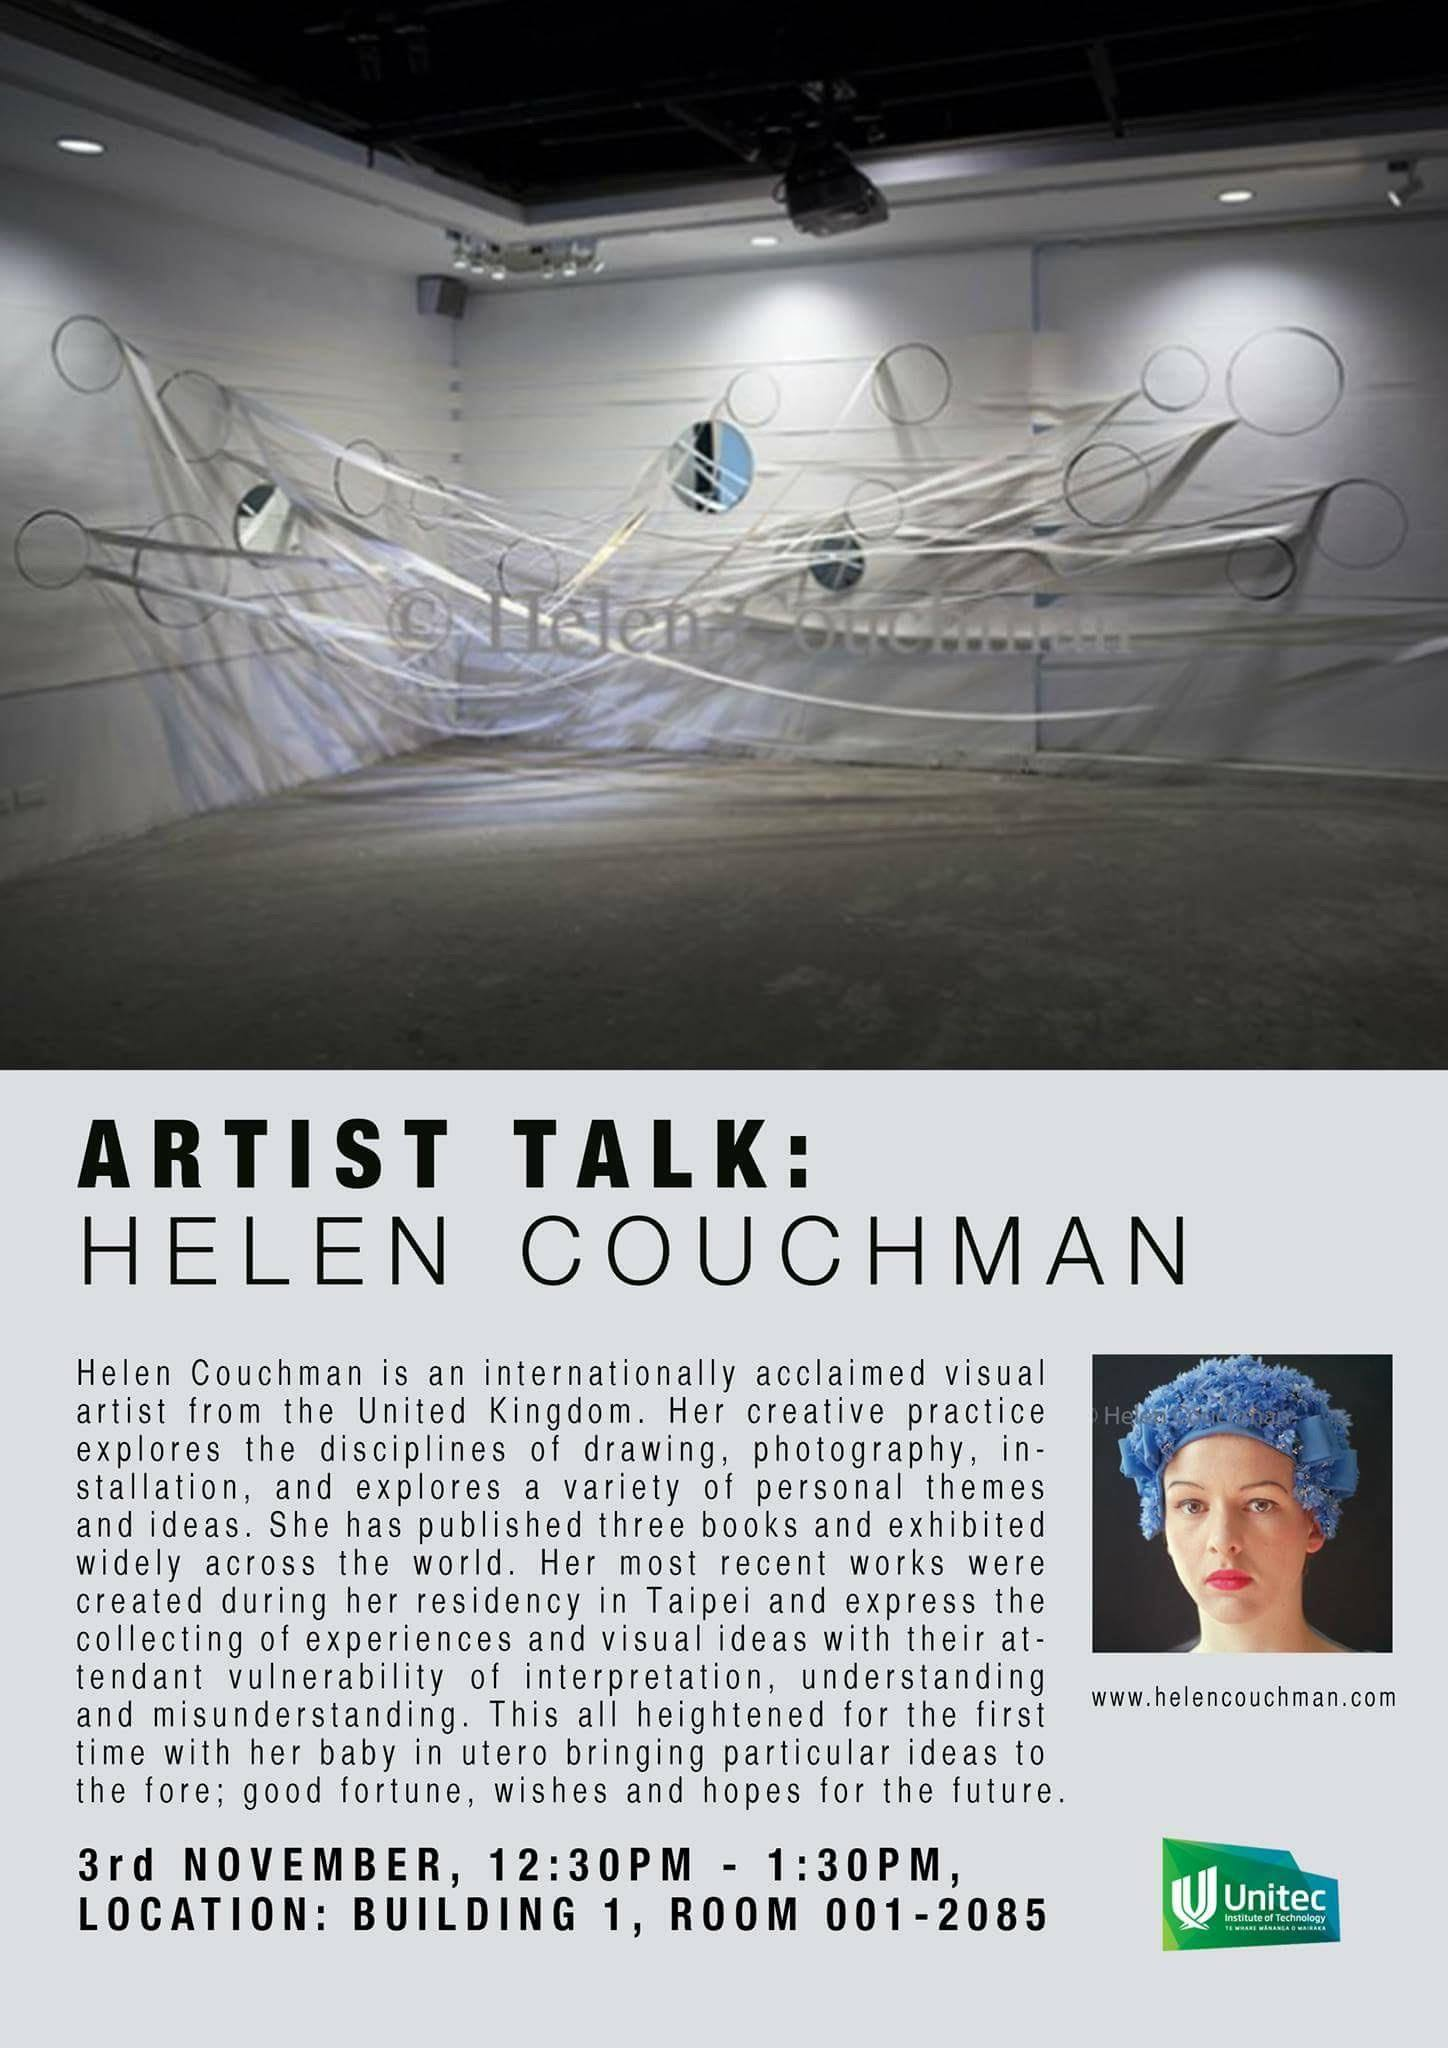 Talk by Helen Couchman at Unitec Institute of Technology, Auckland. 3 November 2016